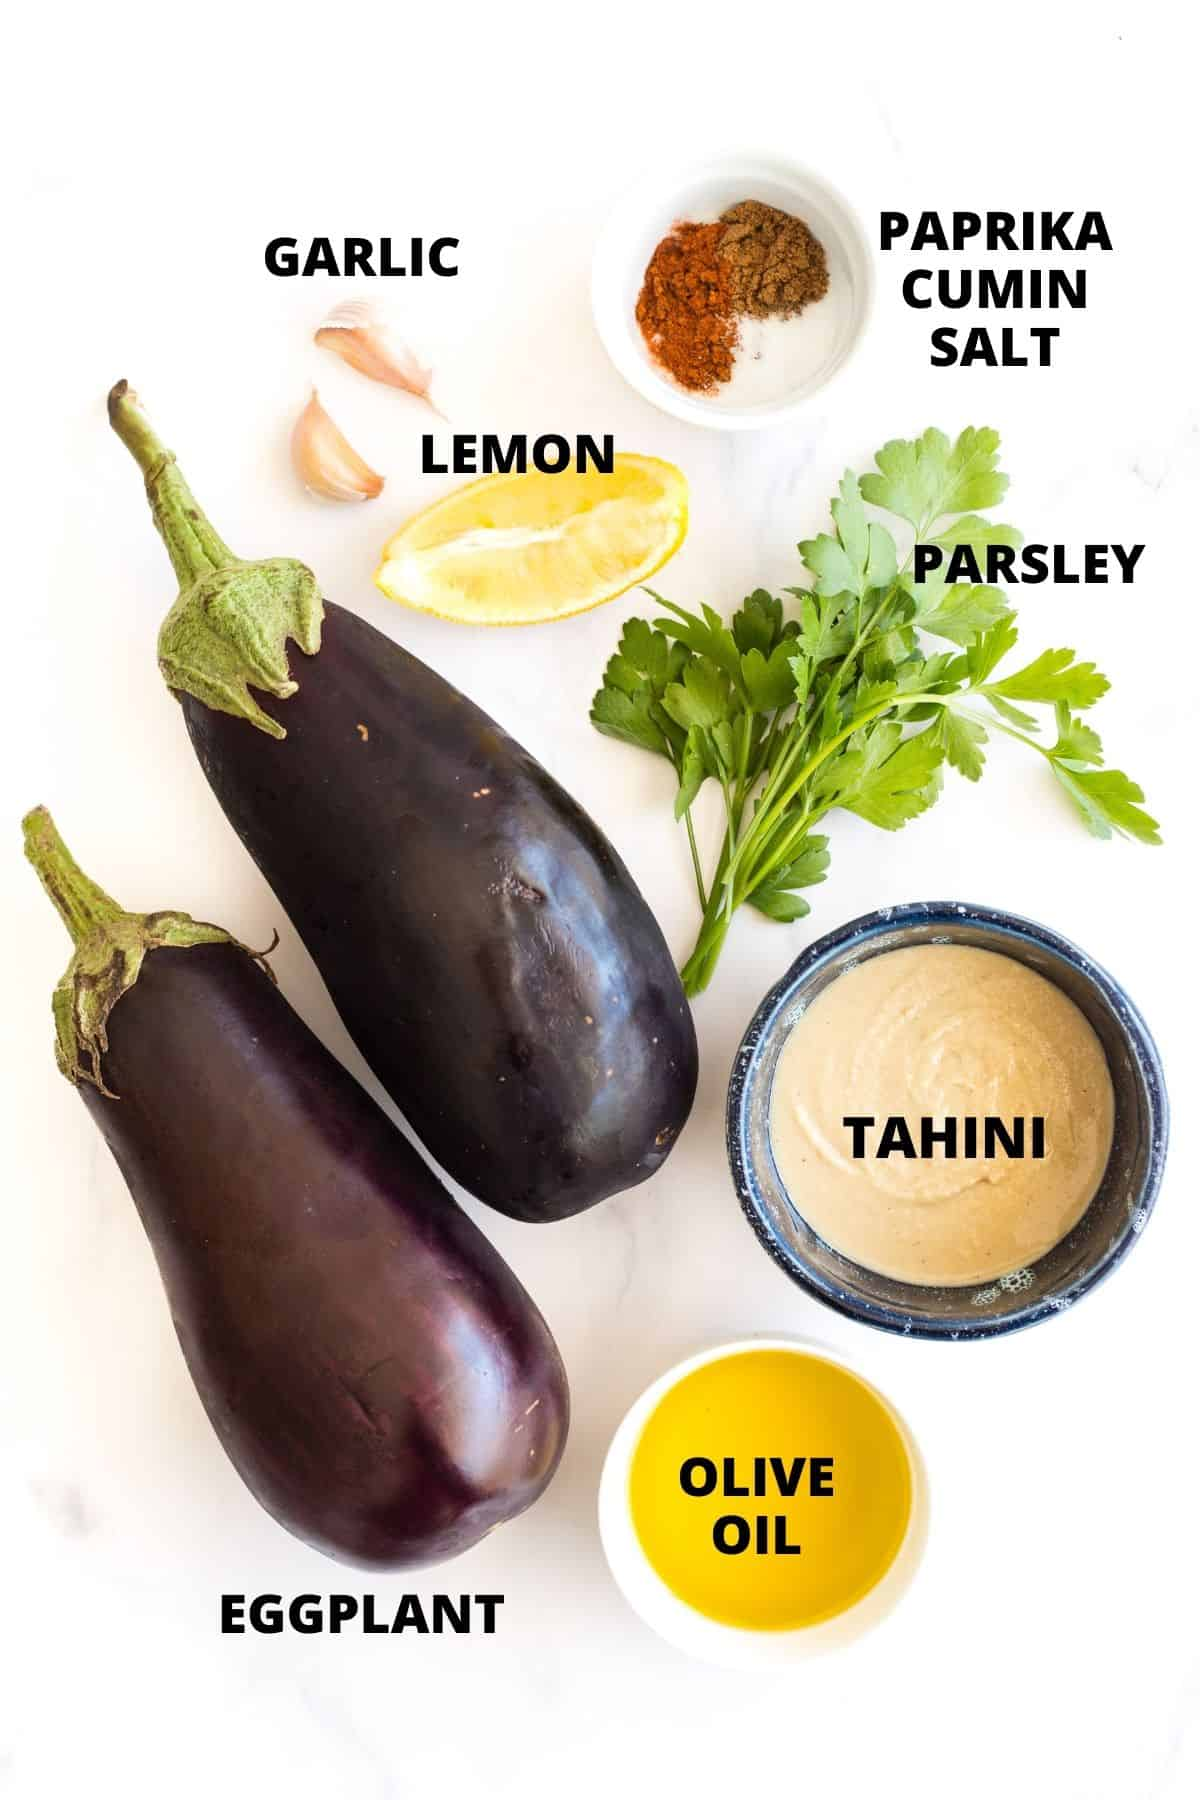 Labeled ingredients for baba ganoush recipe laid out on white board.